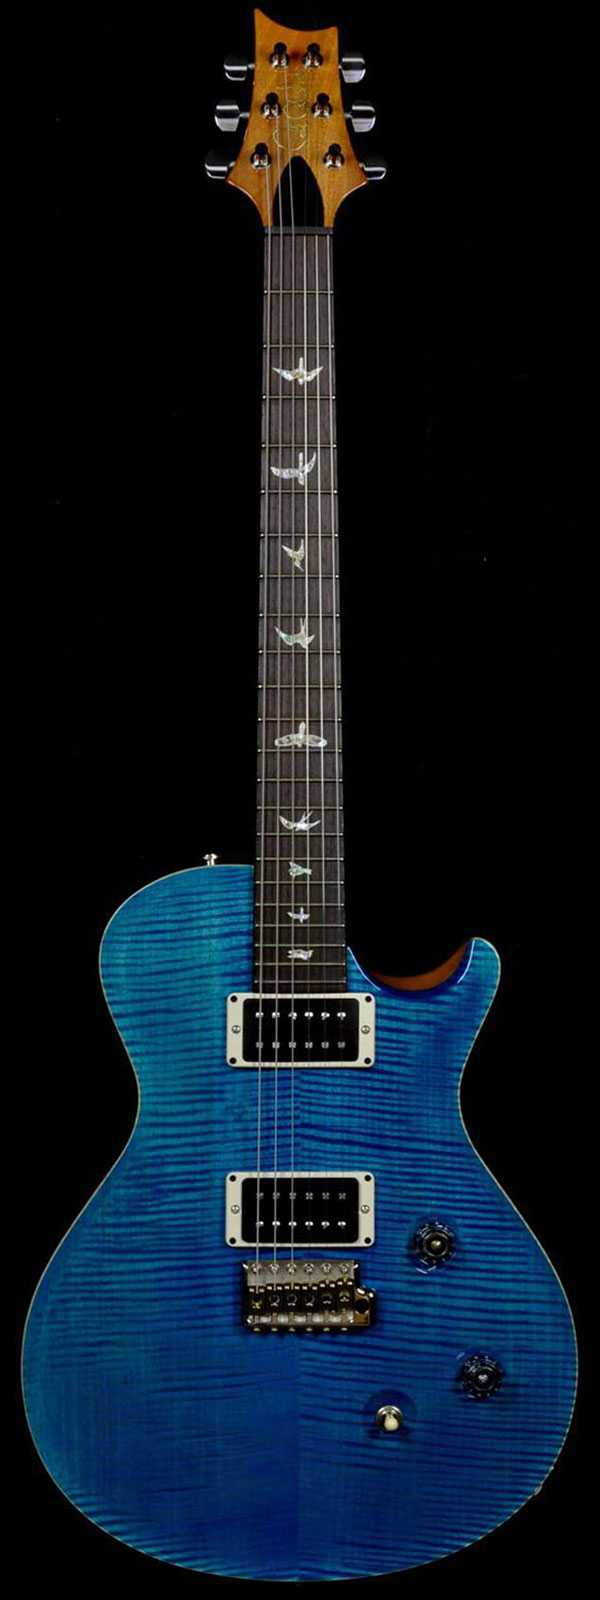 PRS 2013 Experience Singlecut Trem Blue Mateo only 50 Made